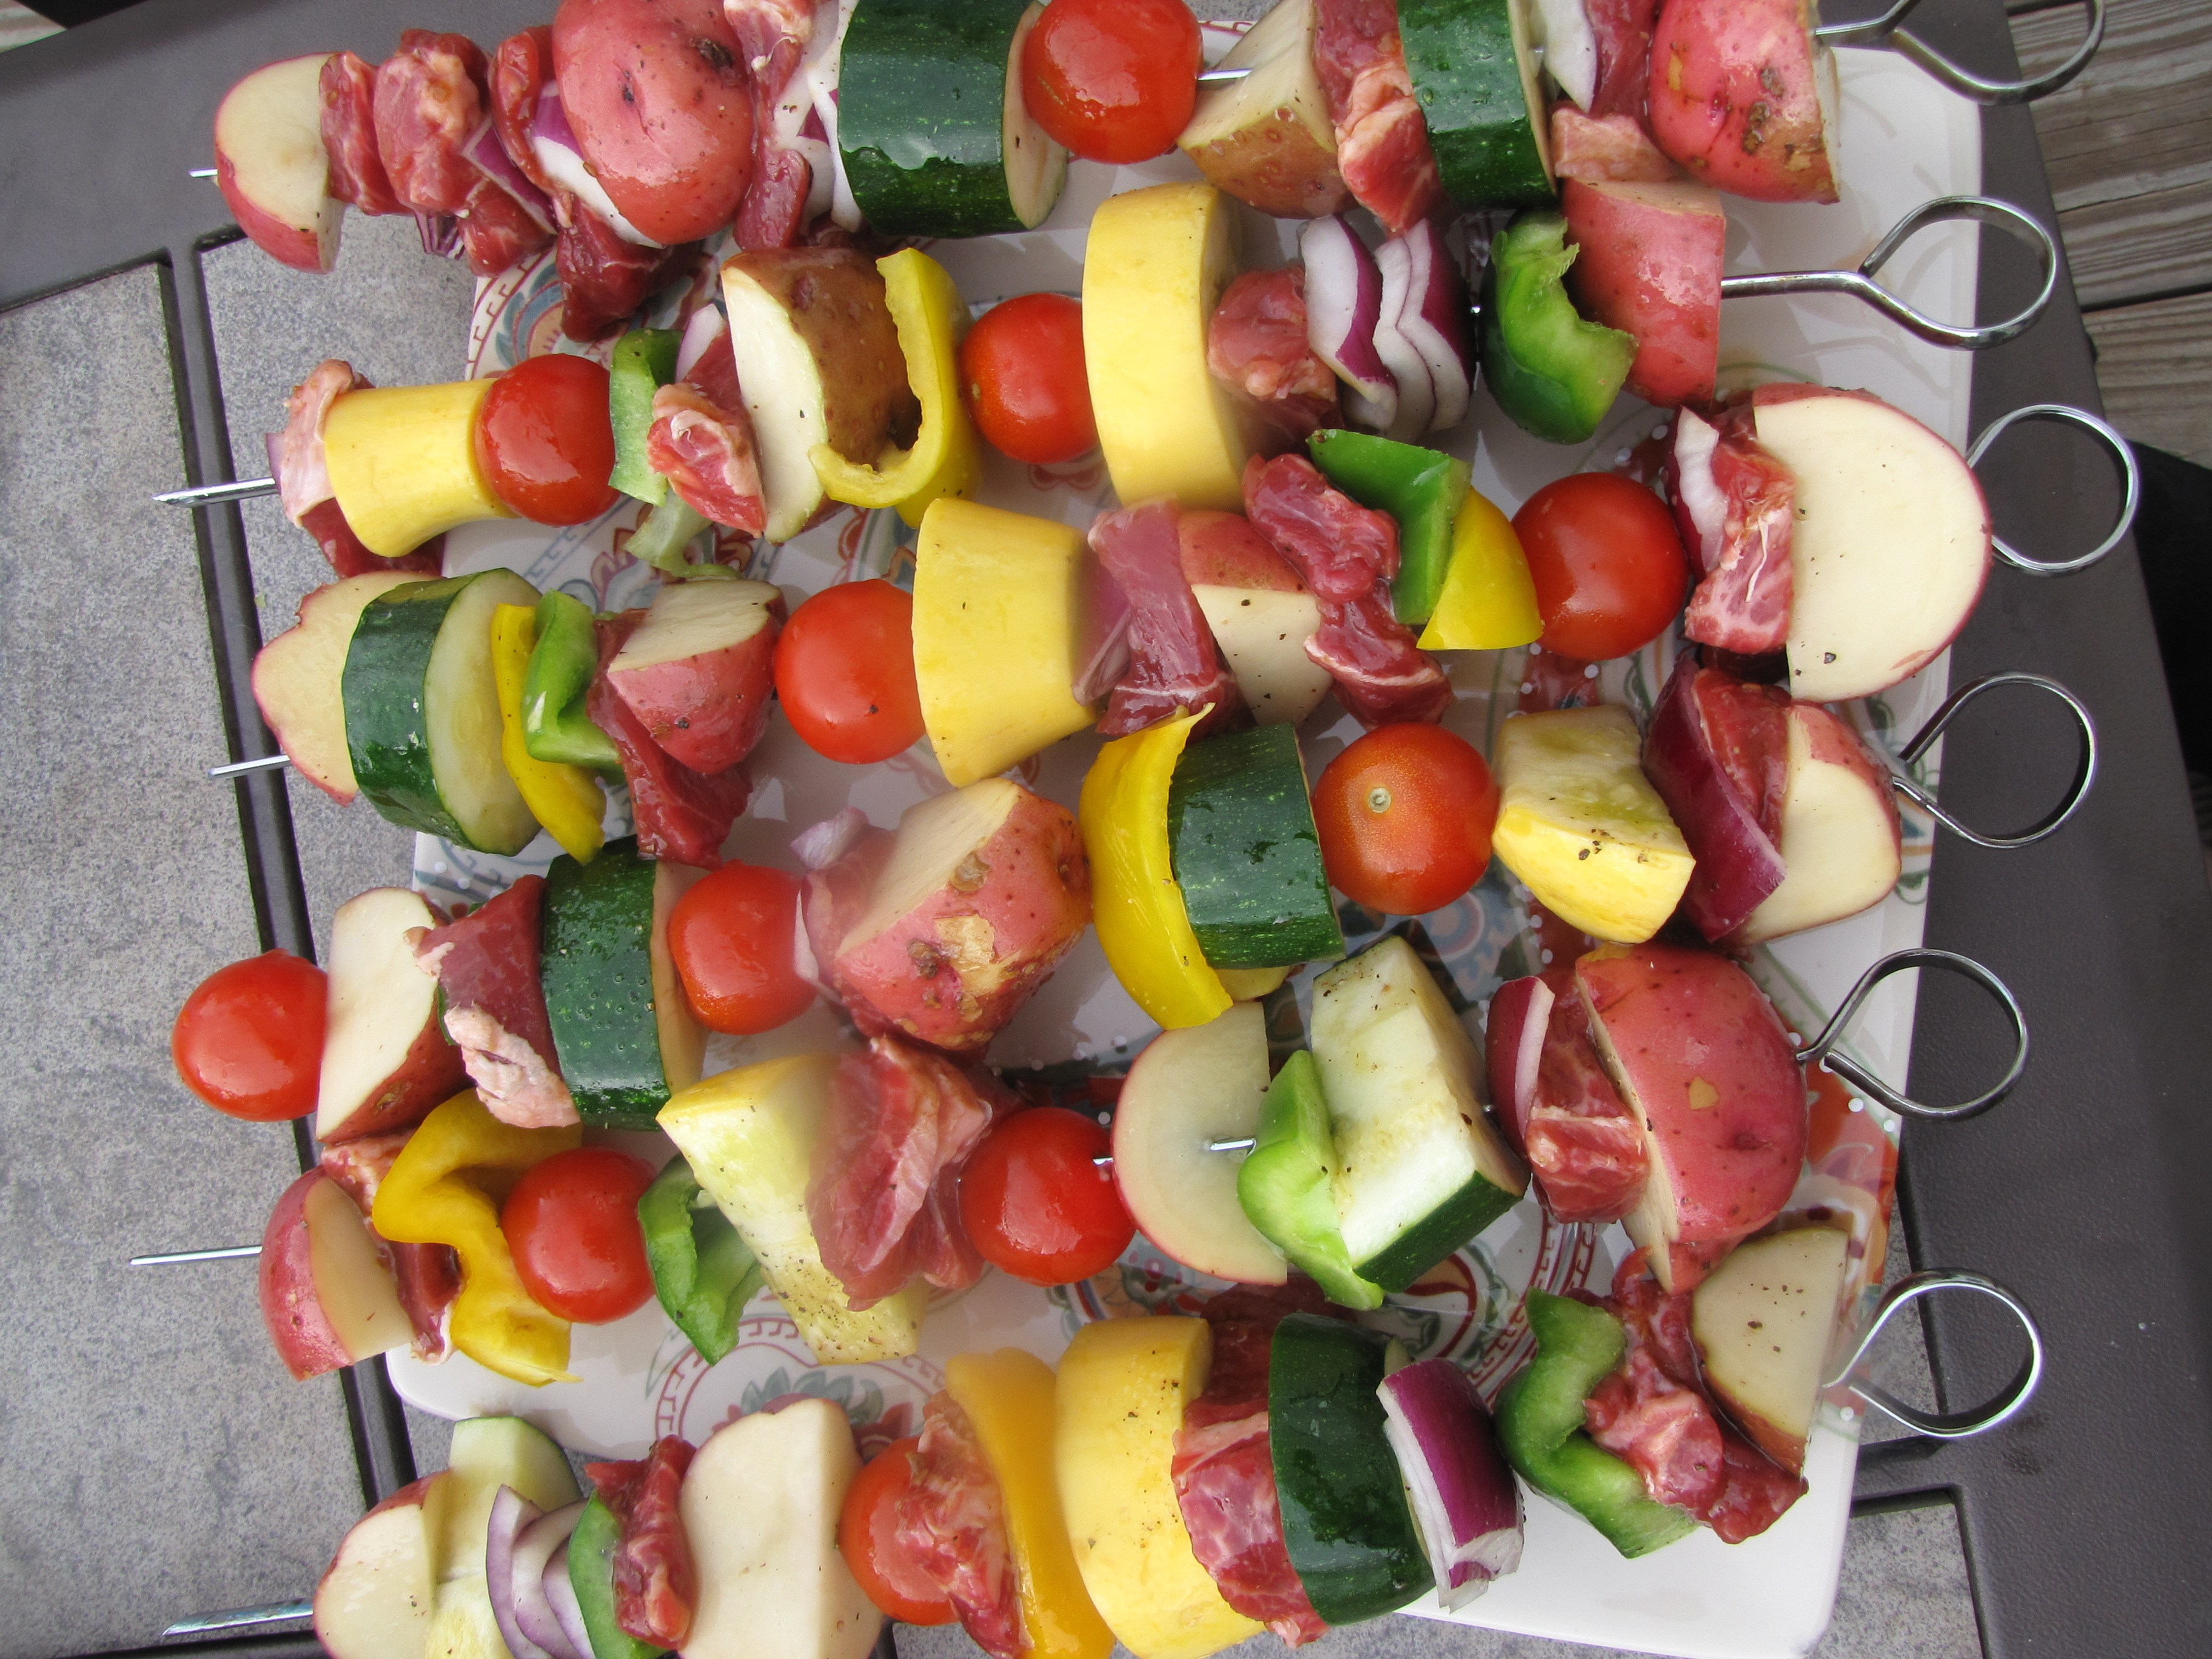 Kabob Meat And Meat on Kabob Skewers